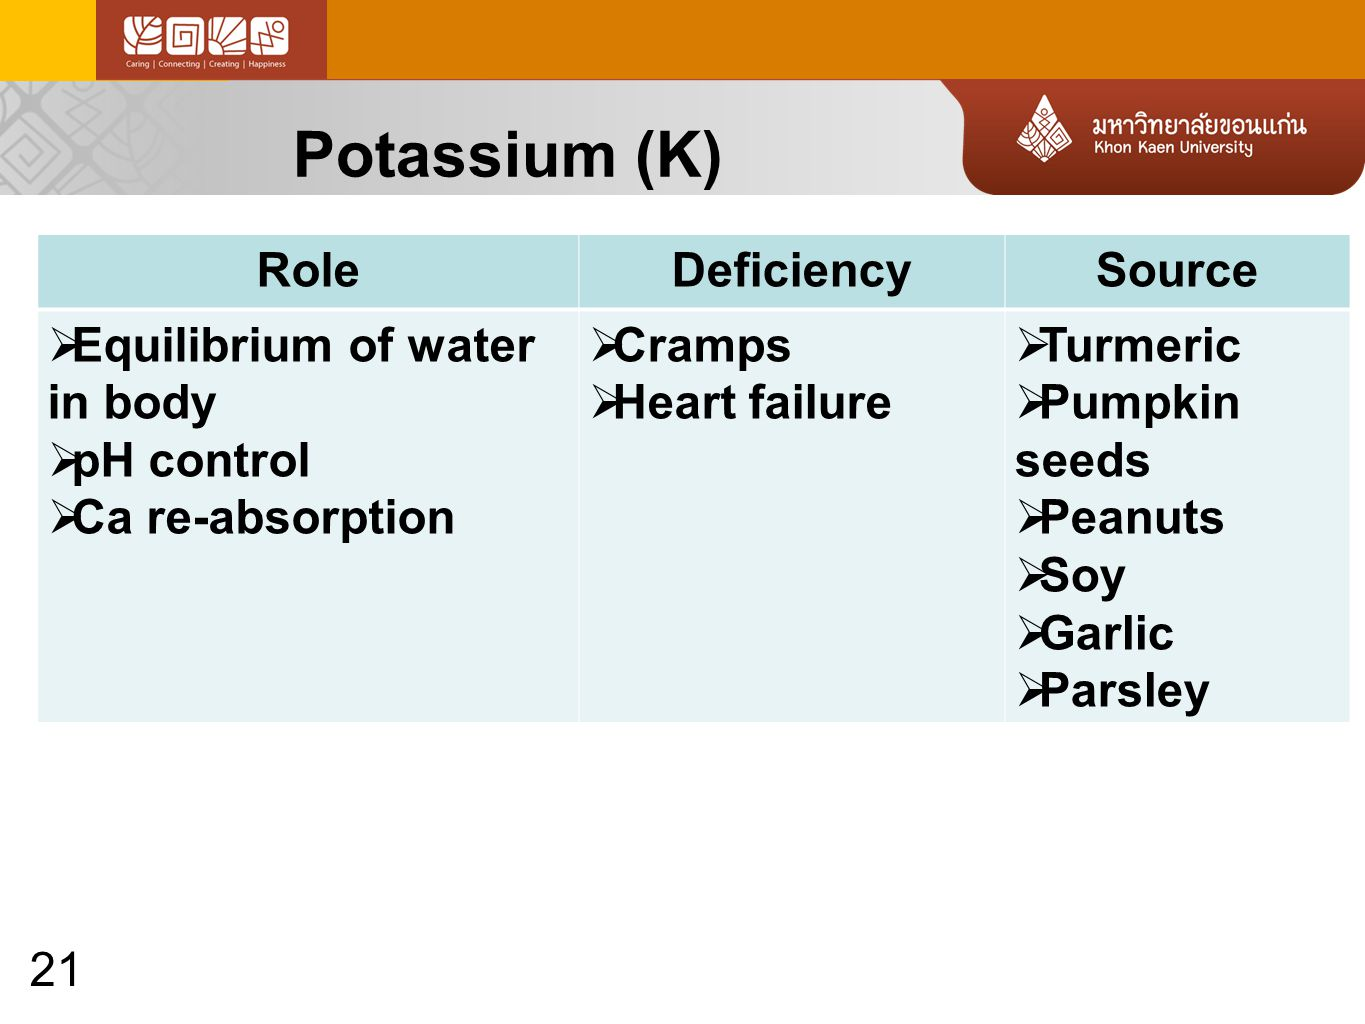 21 Potassium (K) RoleDeficiencySource  Equilibrium of water in body  pH control  Ca re-absorption  Cramps  Heart failure  Turmeric  Pumpkin seeds  Peanuts  Soy  Garlic  Parsley